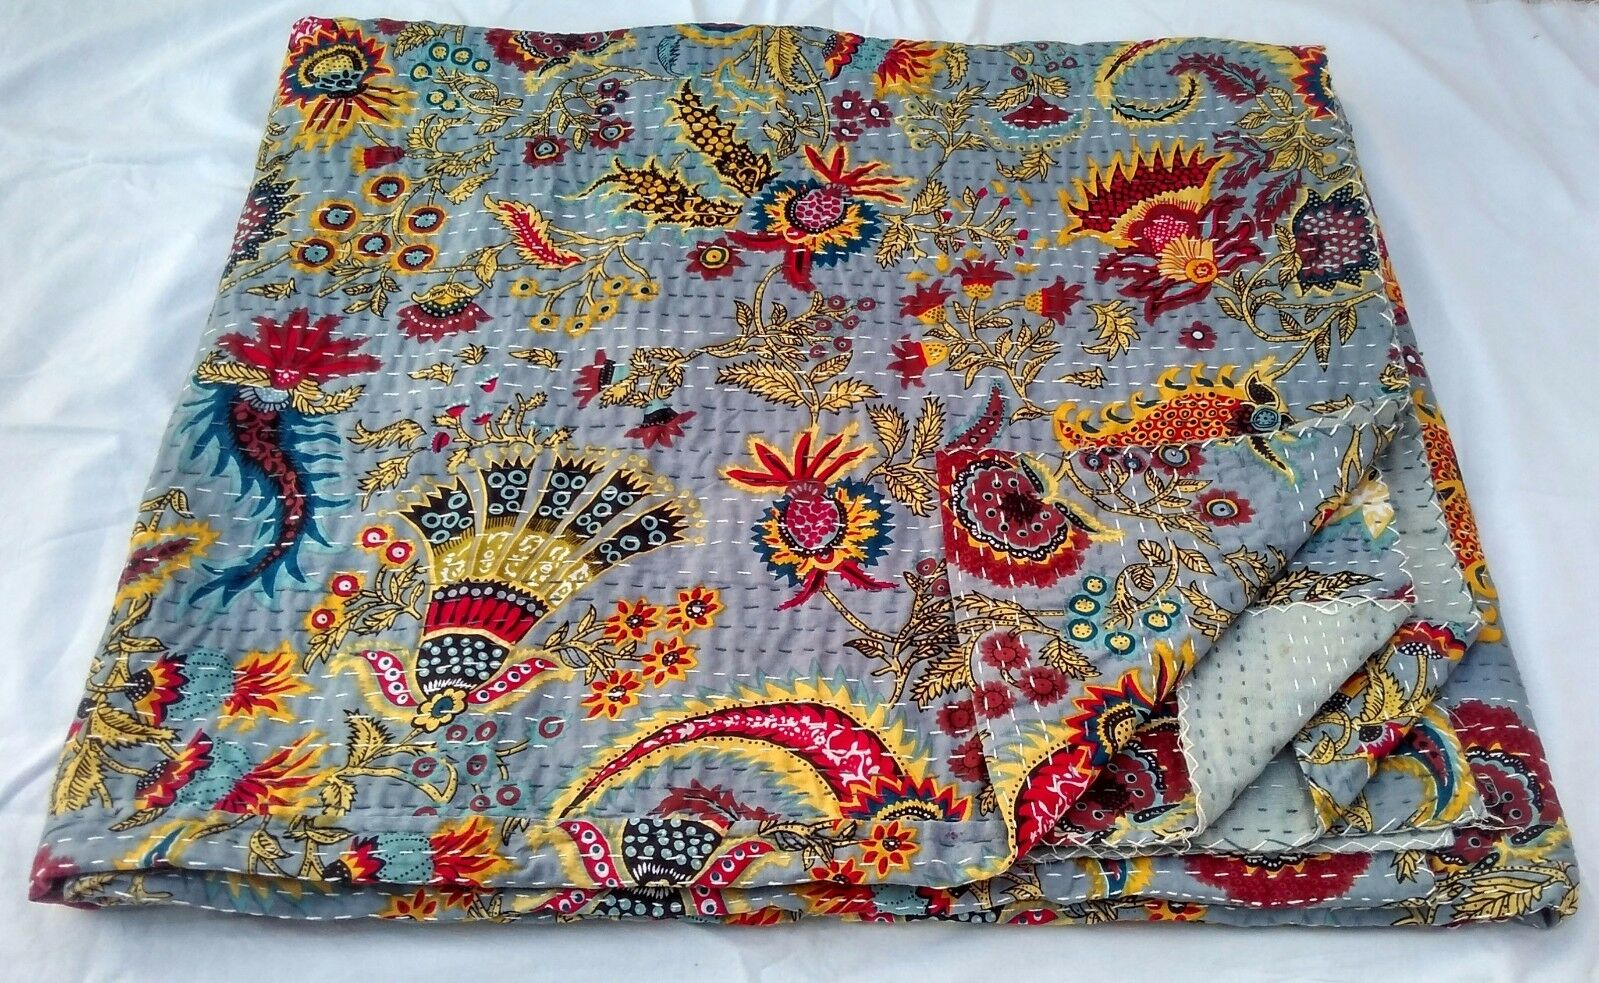 Throw Sheet Queen Size King SIze Fine Hand Craft Kantha Bedsheet Blanket Cotton